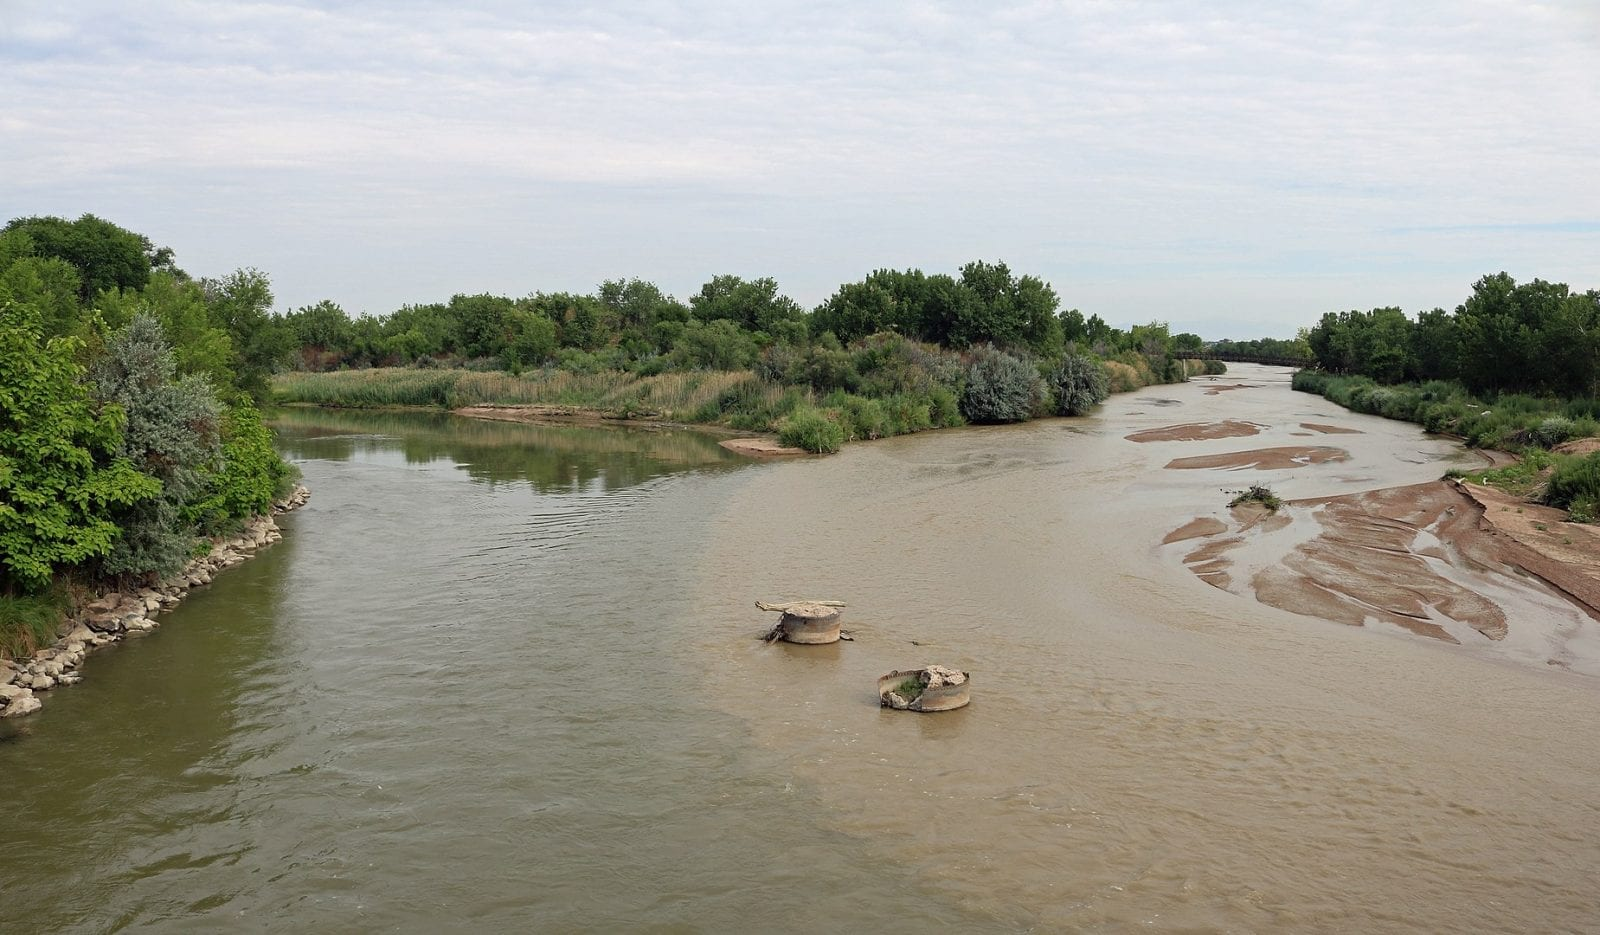 Image of the confluence of the Fountain Creek and Arkansas River